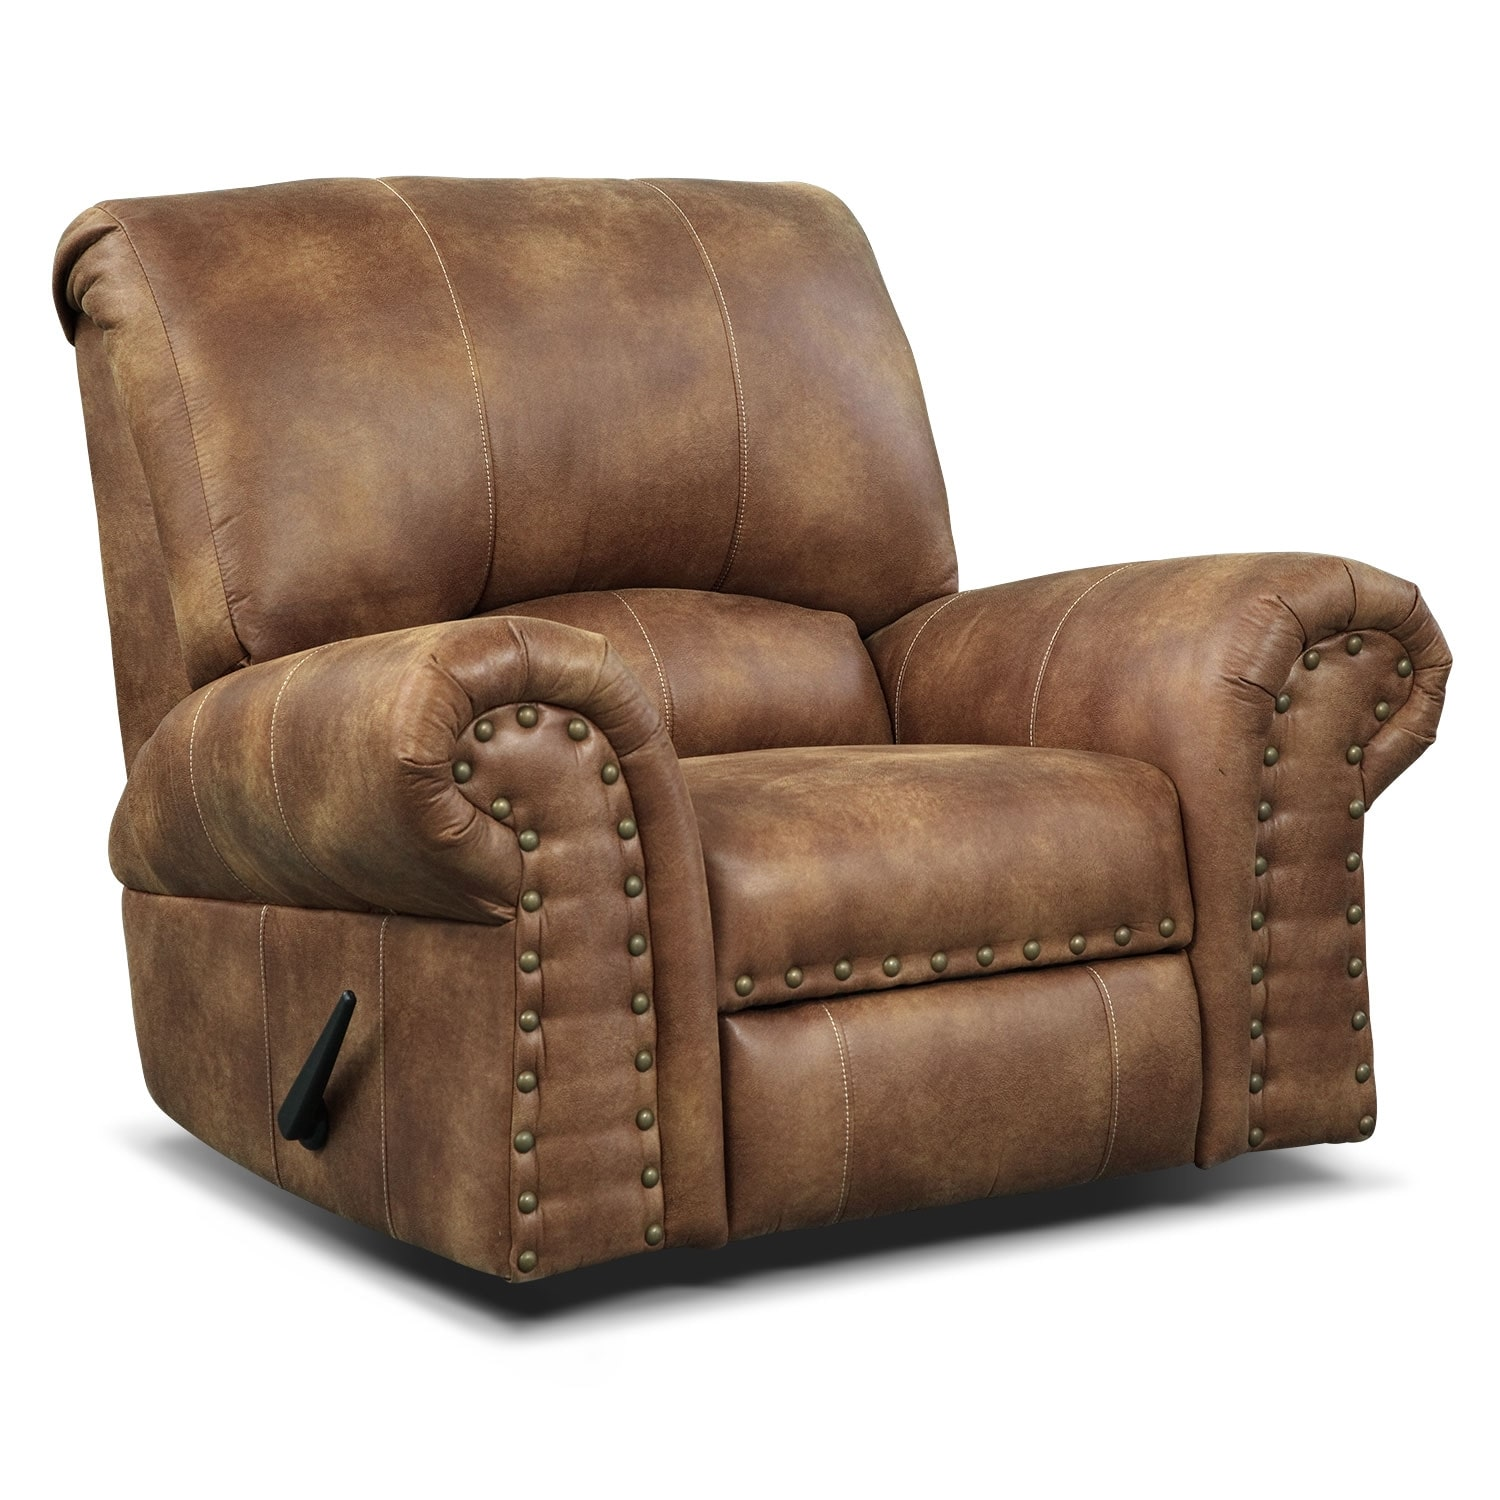 Living Room Furniture - Burlington Recliner